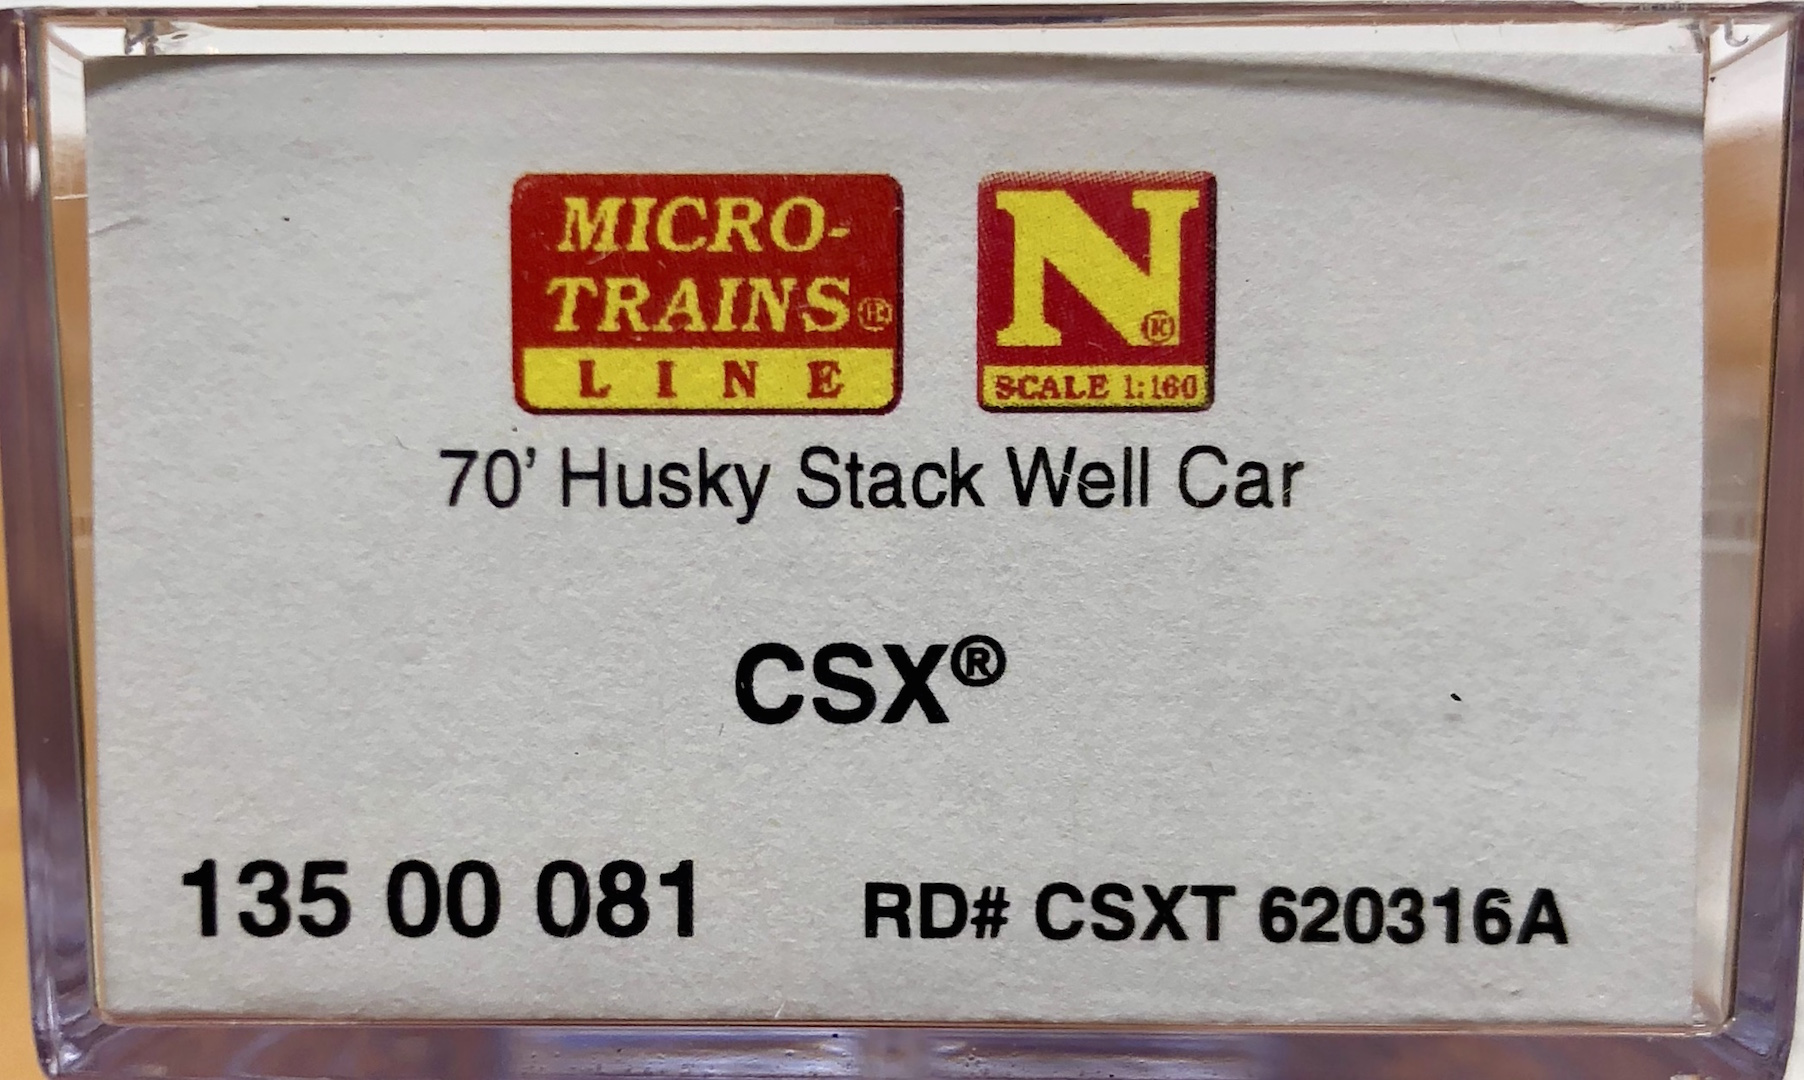 N Scale - Micro-Trains - 135 00 081 - Container Car, Single Well, Gunderson Husky Stack 48 - CSX Transportation - 620316A